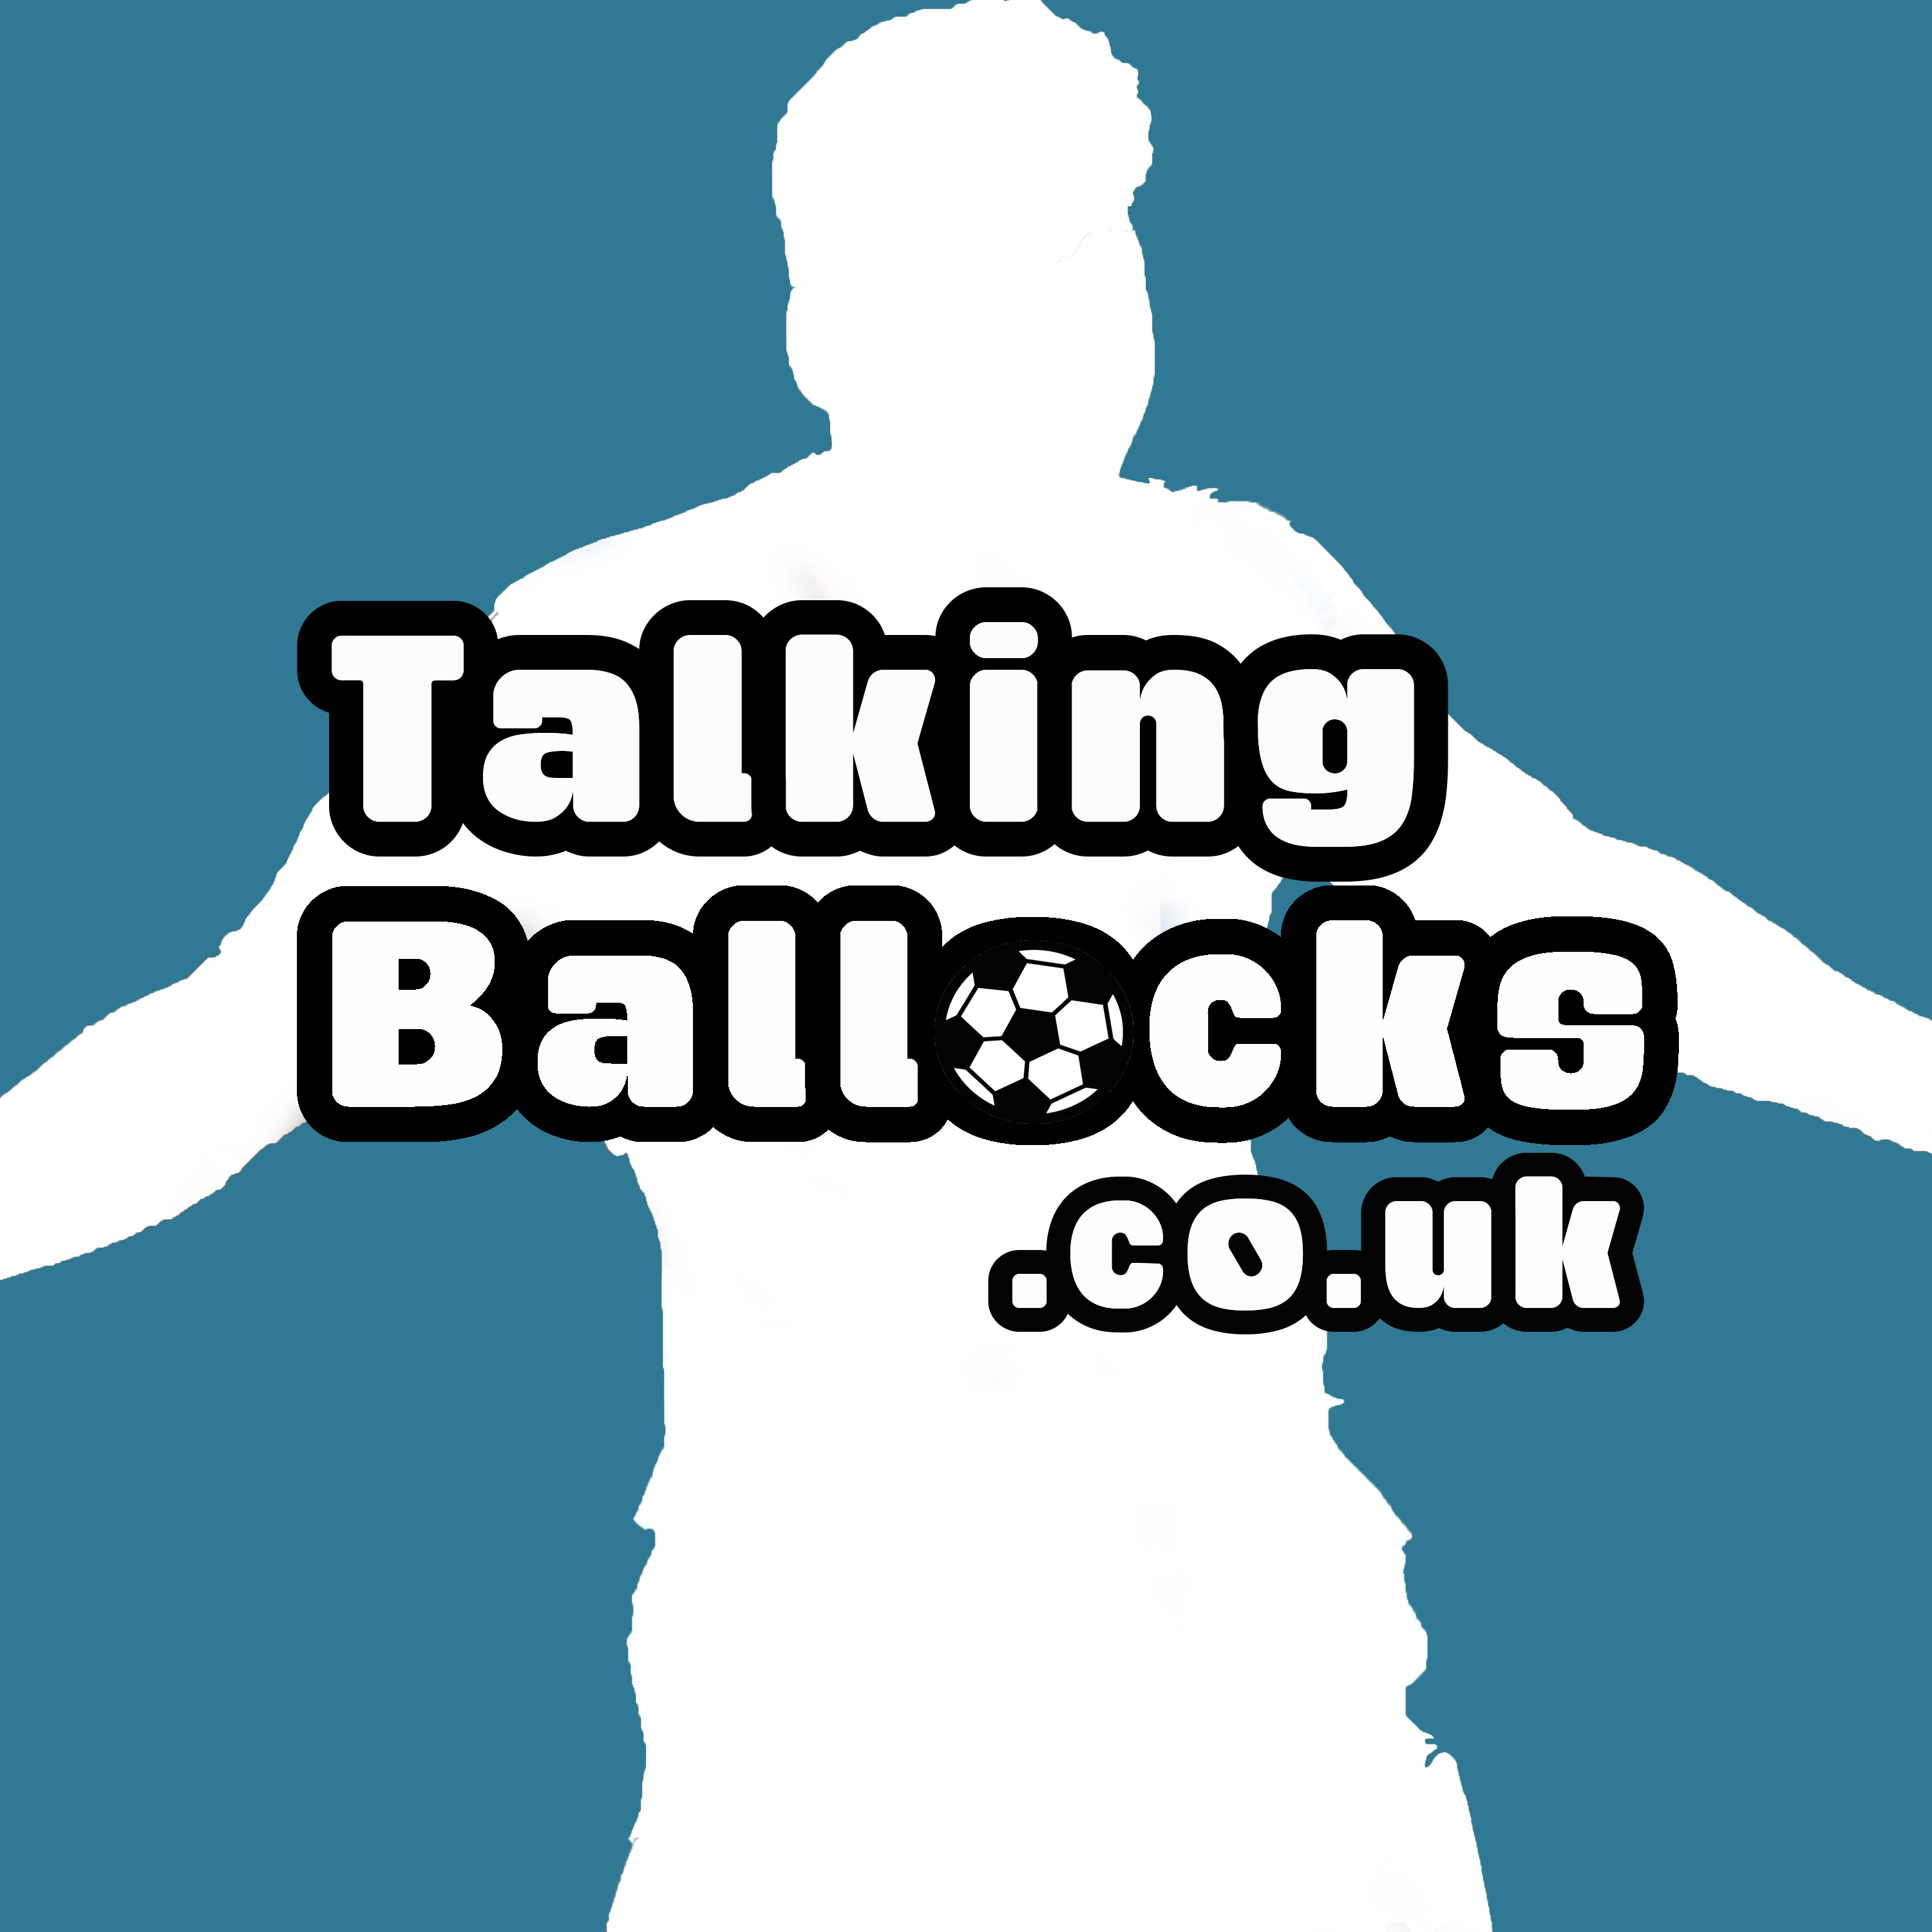 Talking Ball-ocks